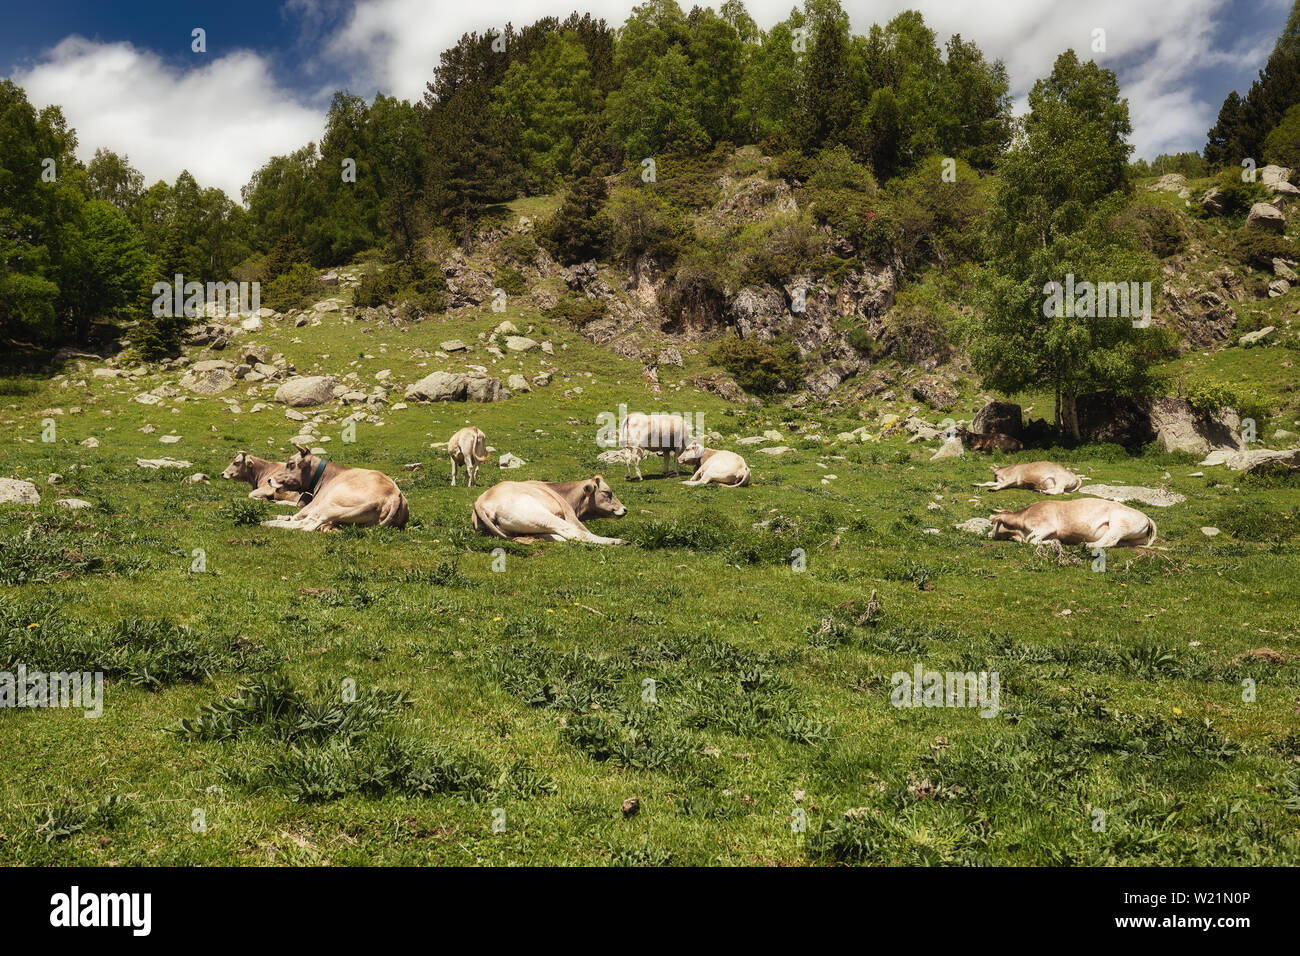 The beautiful Aiguestortes i Estany de Sant Maurici National Park of the Spanish Pyrenees mountain in Catalonia - Stock Image